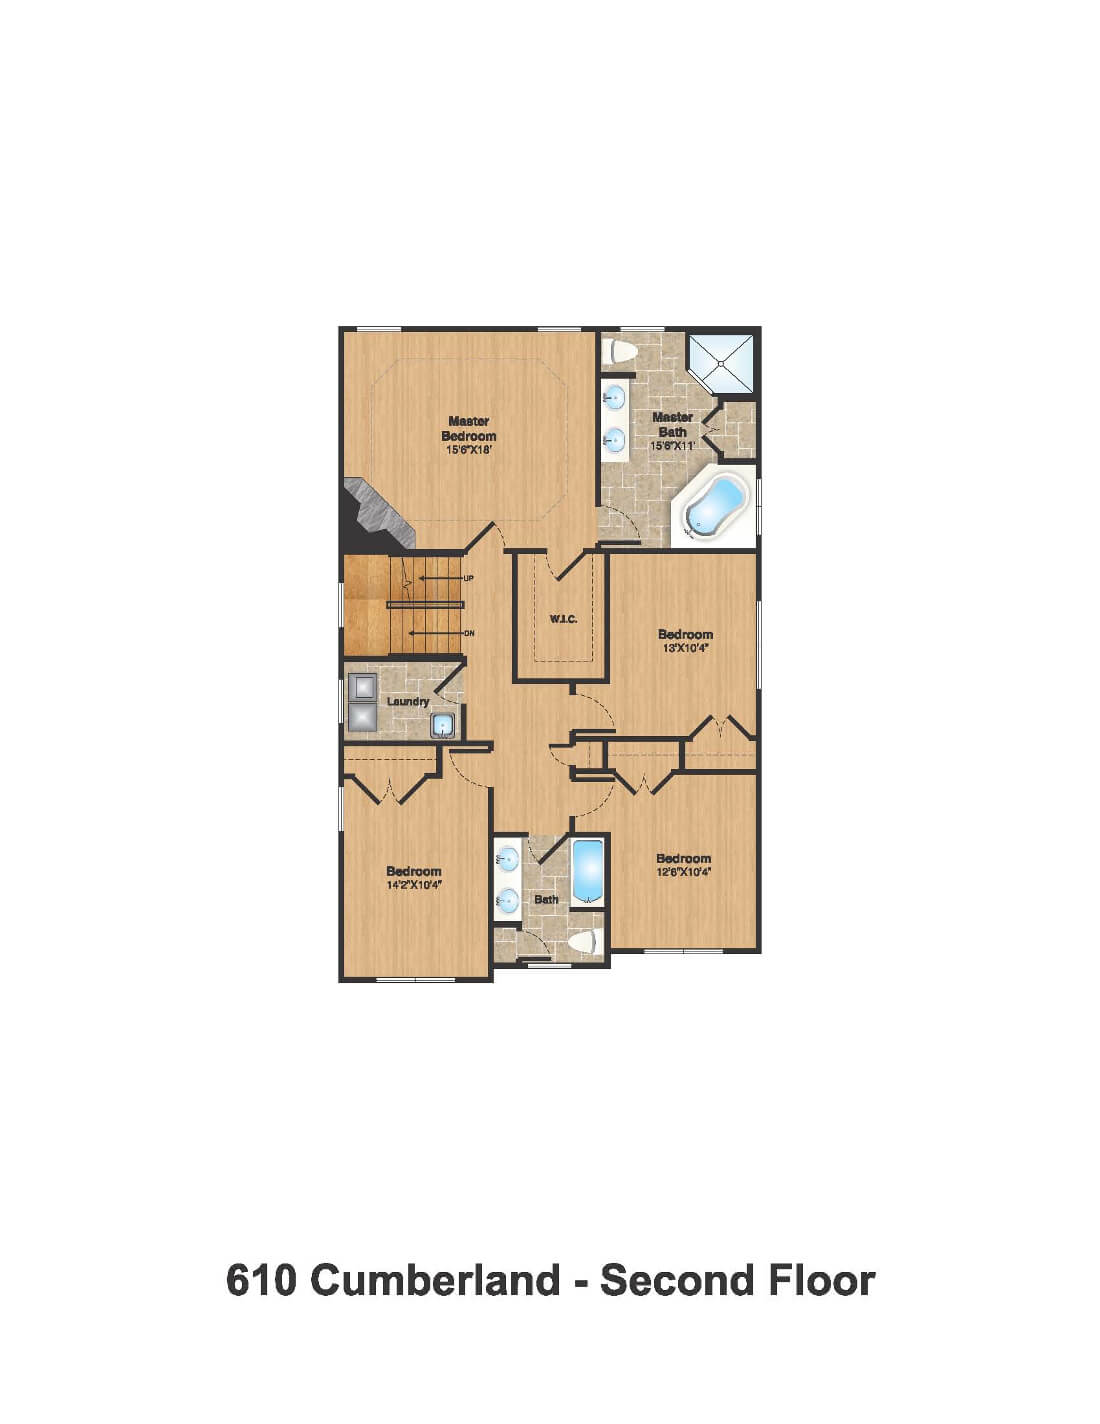 610 Cumberland Floorplan 2nd Floor Color